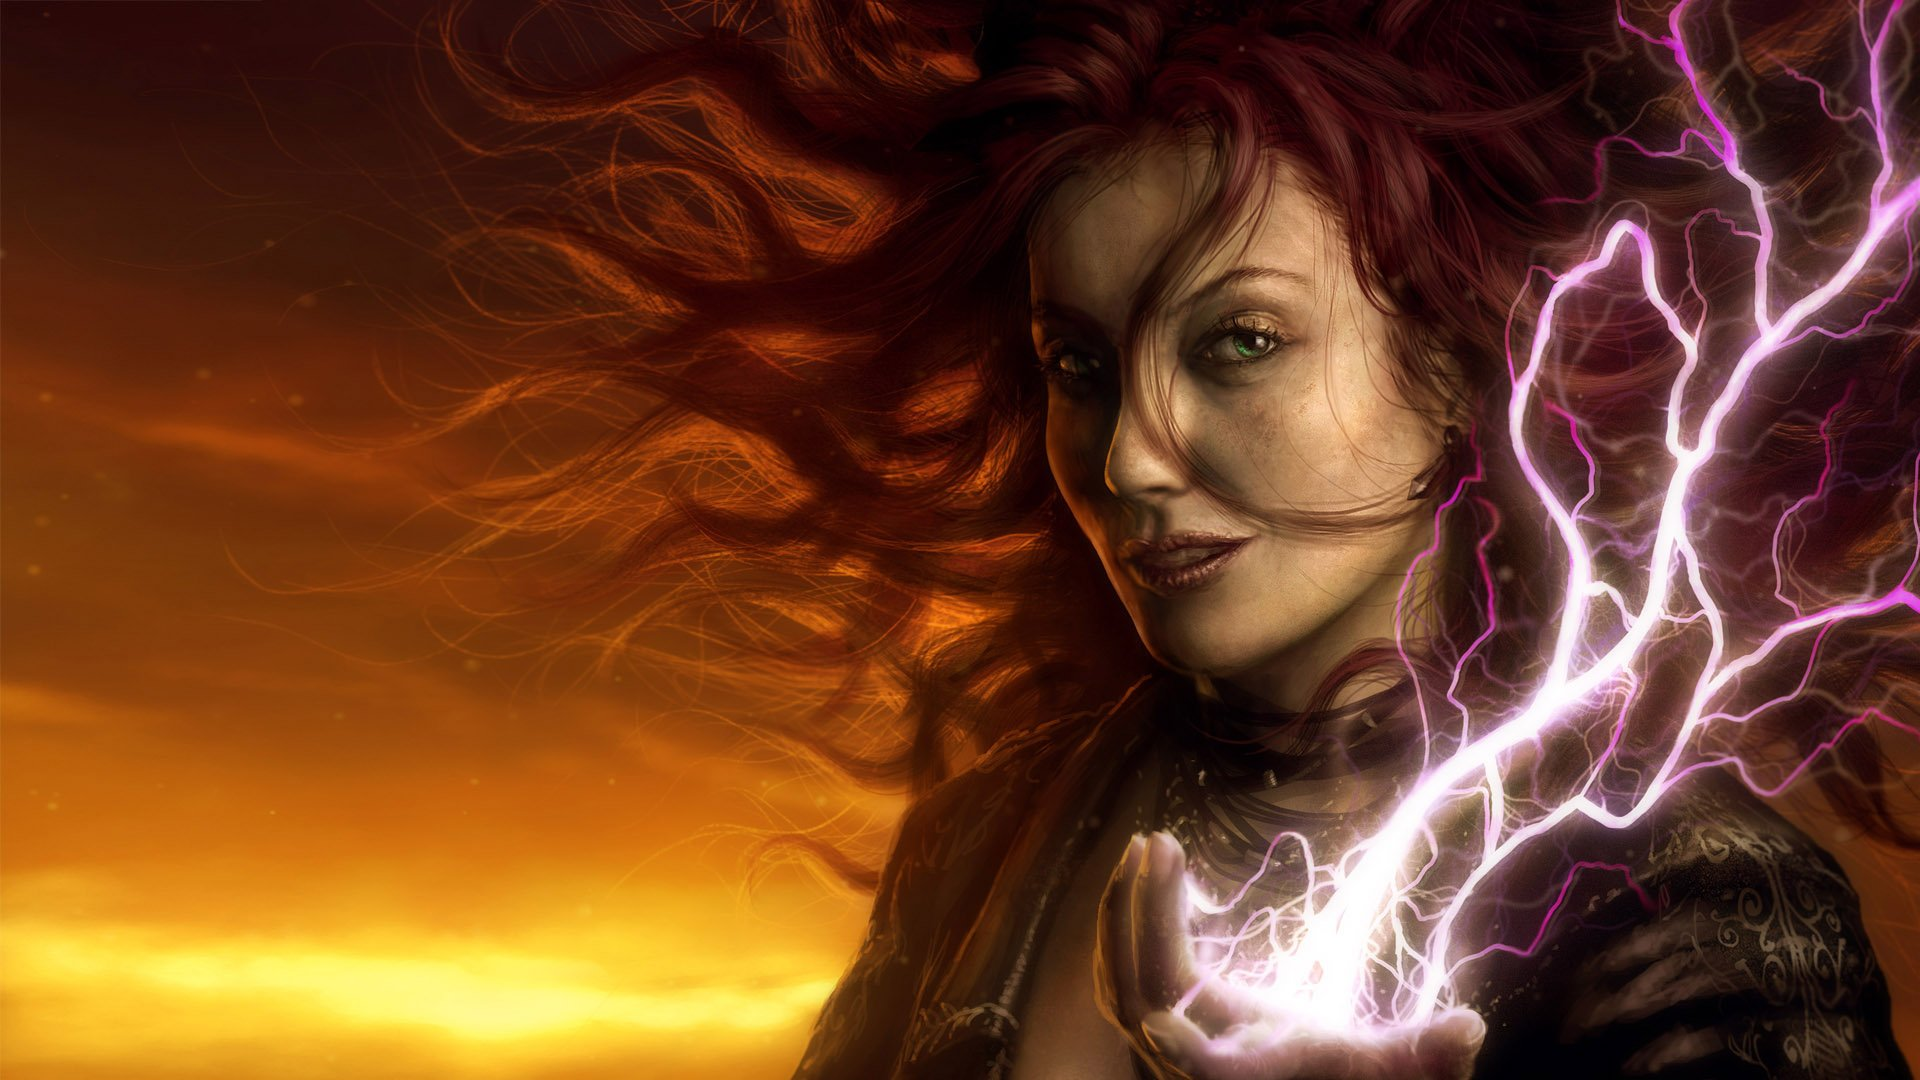 Fantasy - Witch  Dark Woman Magic Lightning Redhead Sunset Electricity Fantasy Wallpaper